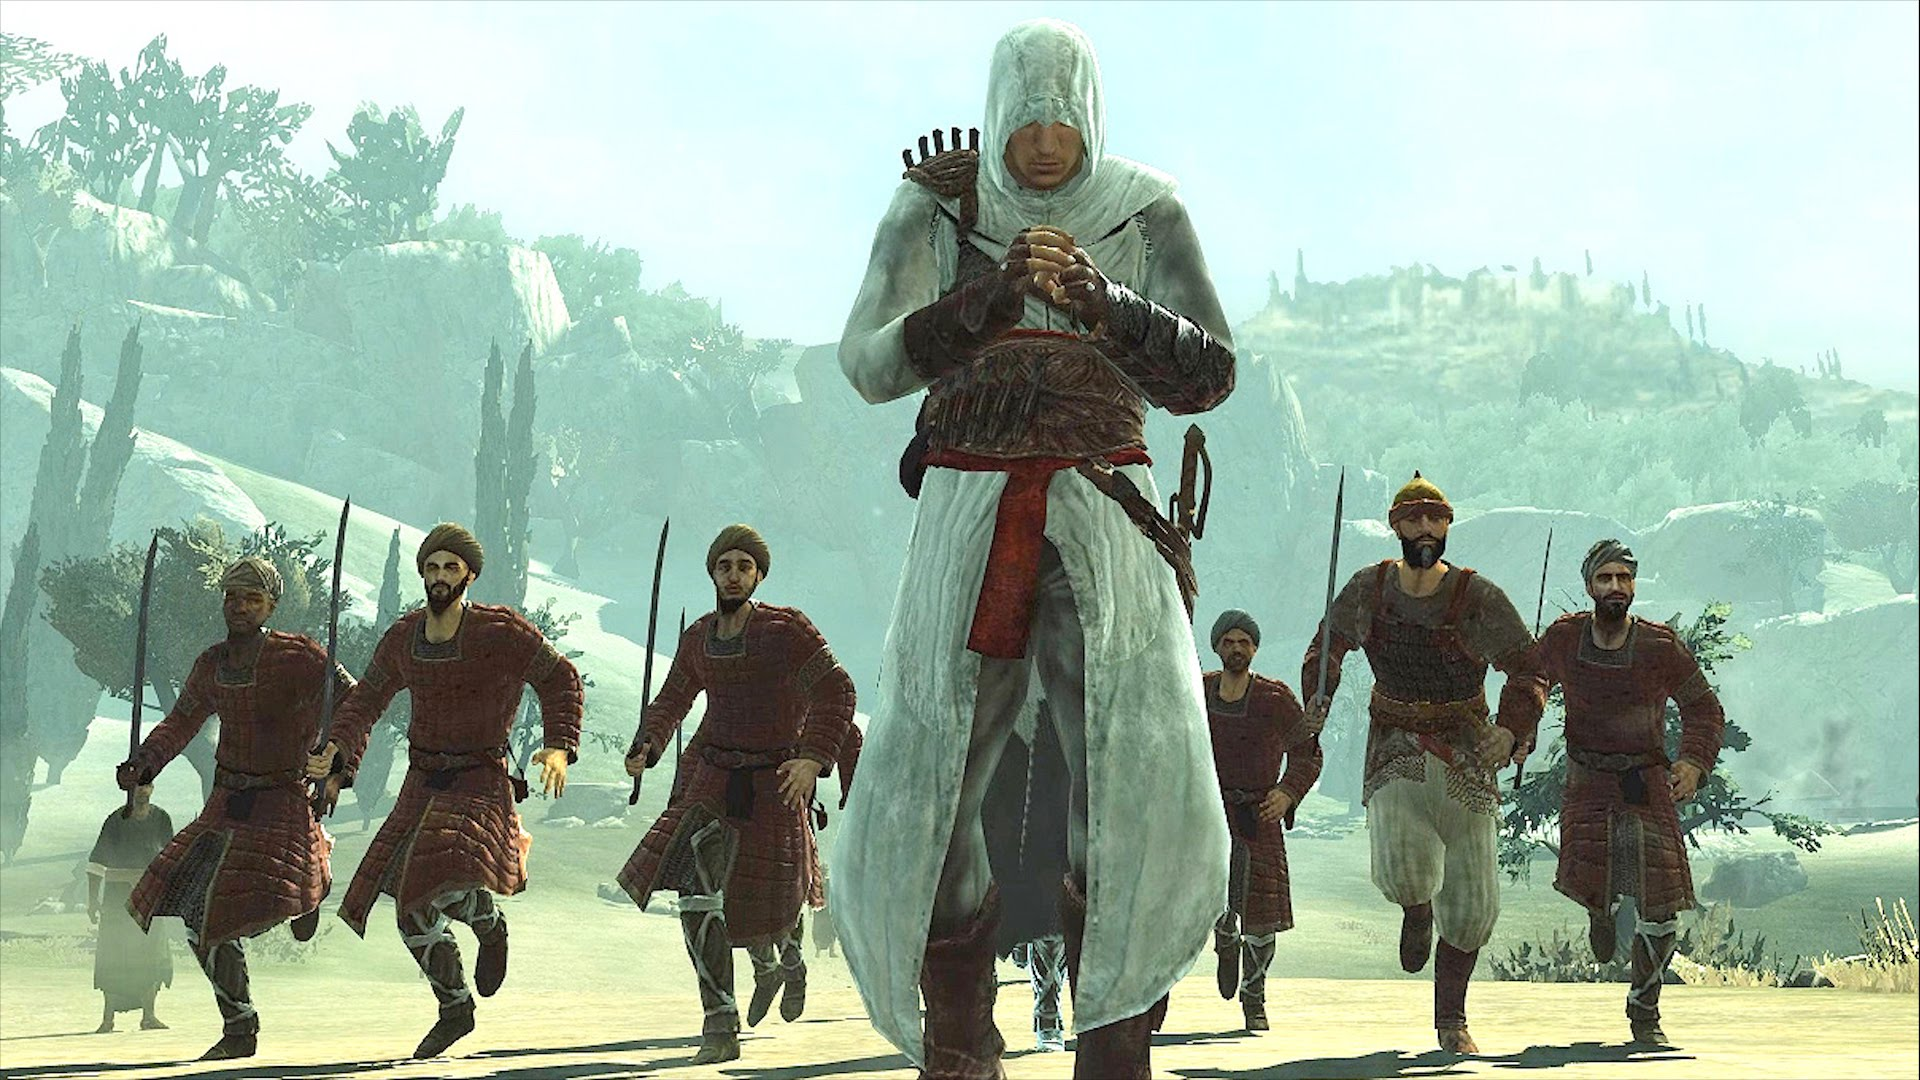 8. Assassin's Creed 1